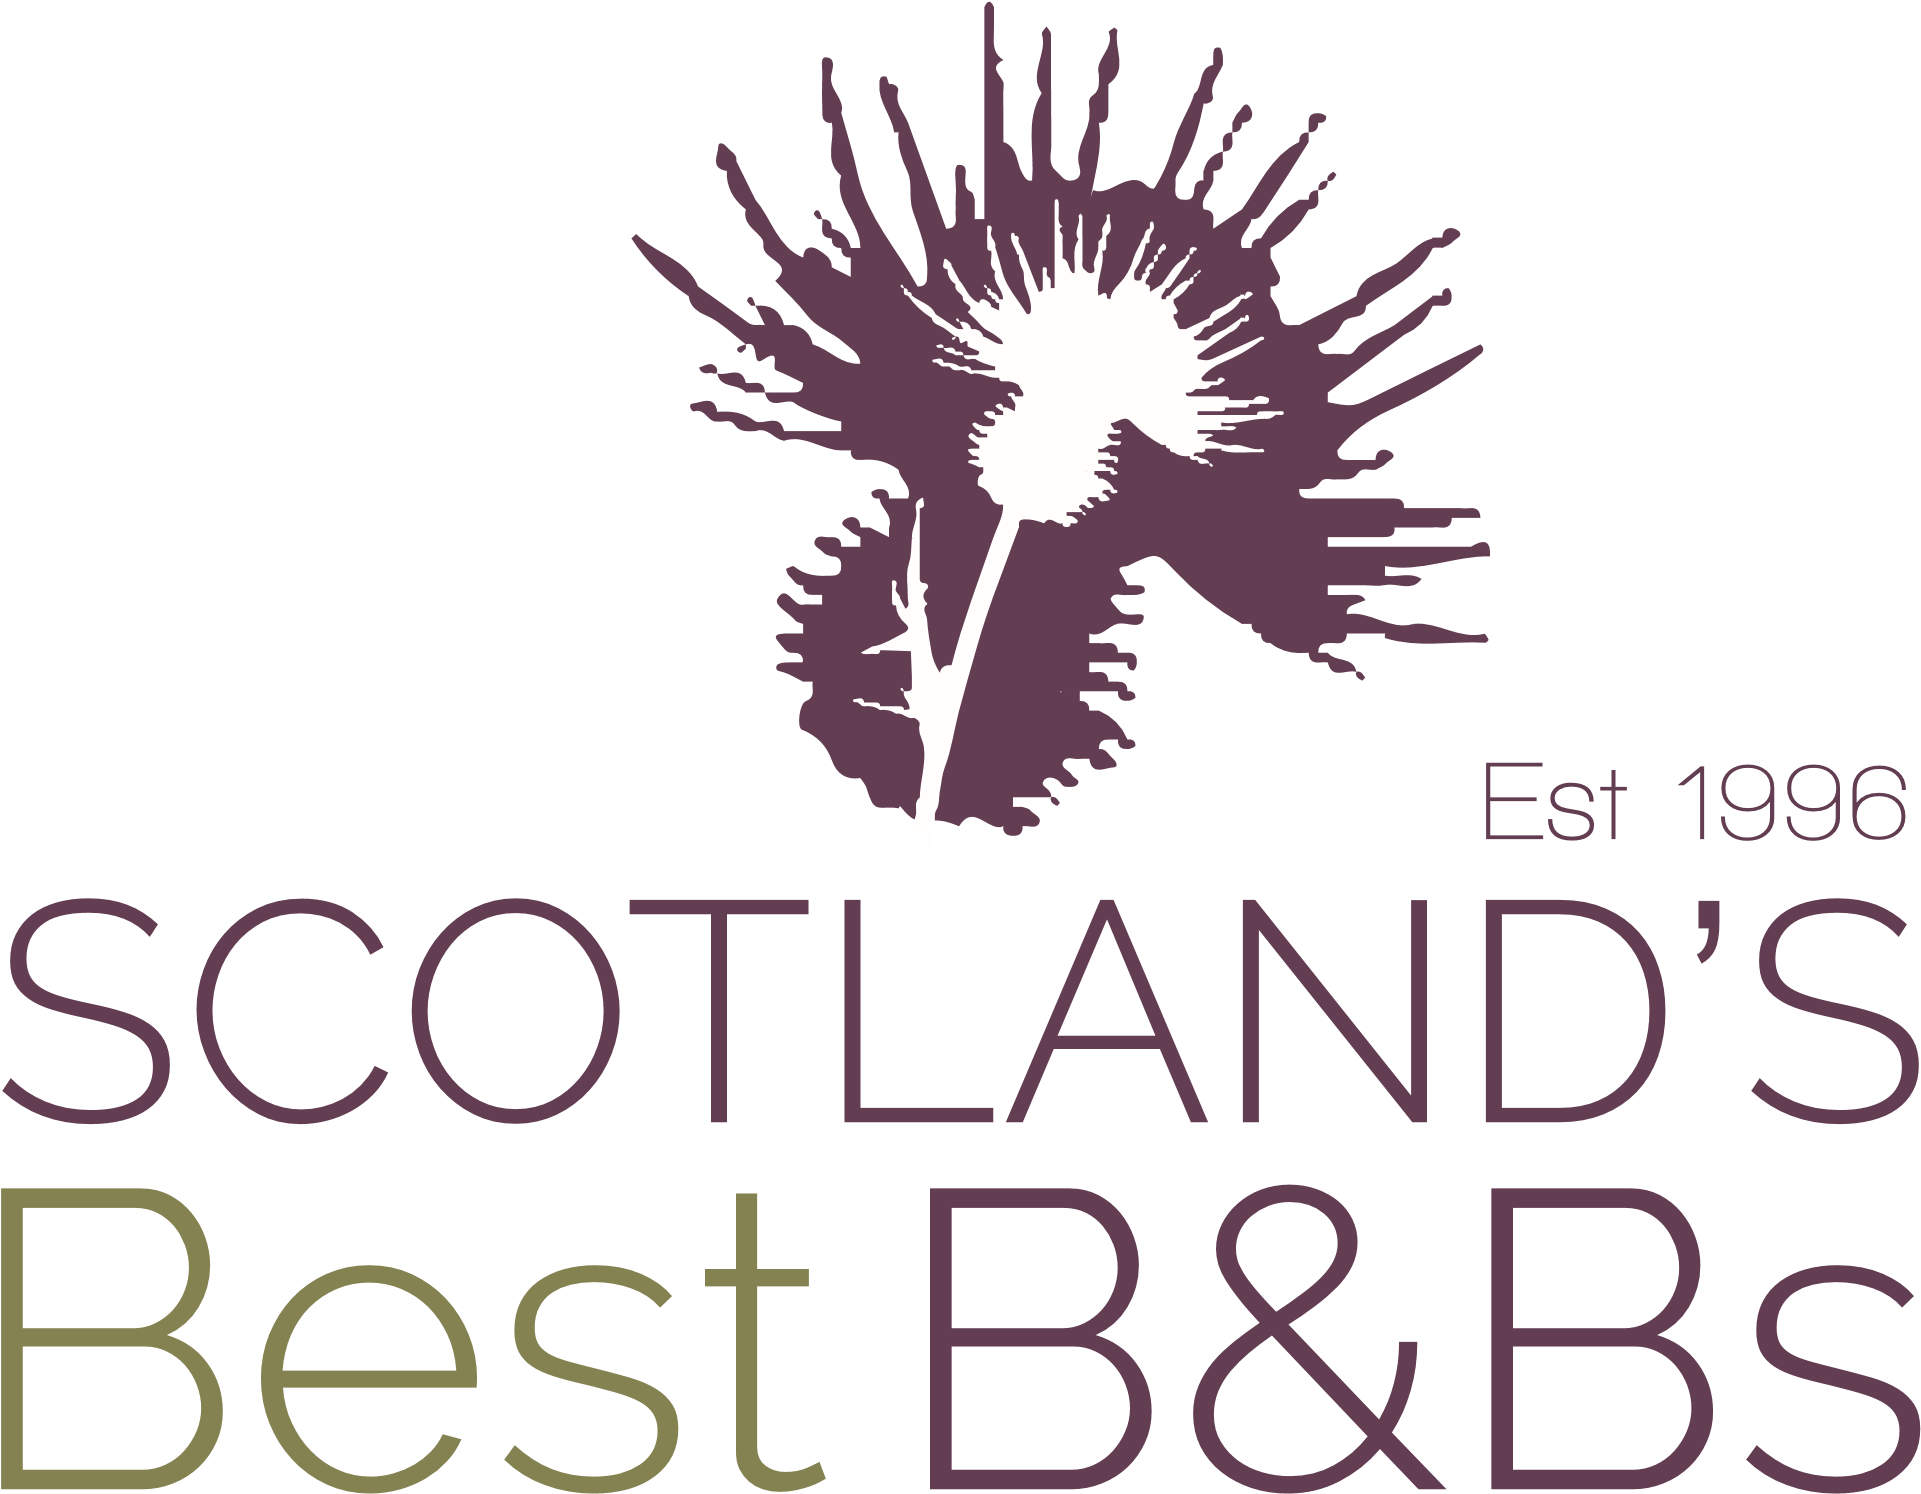 Brookford - members of Scotland's Best B&B's